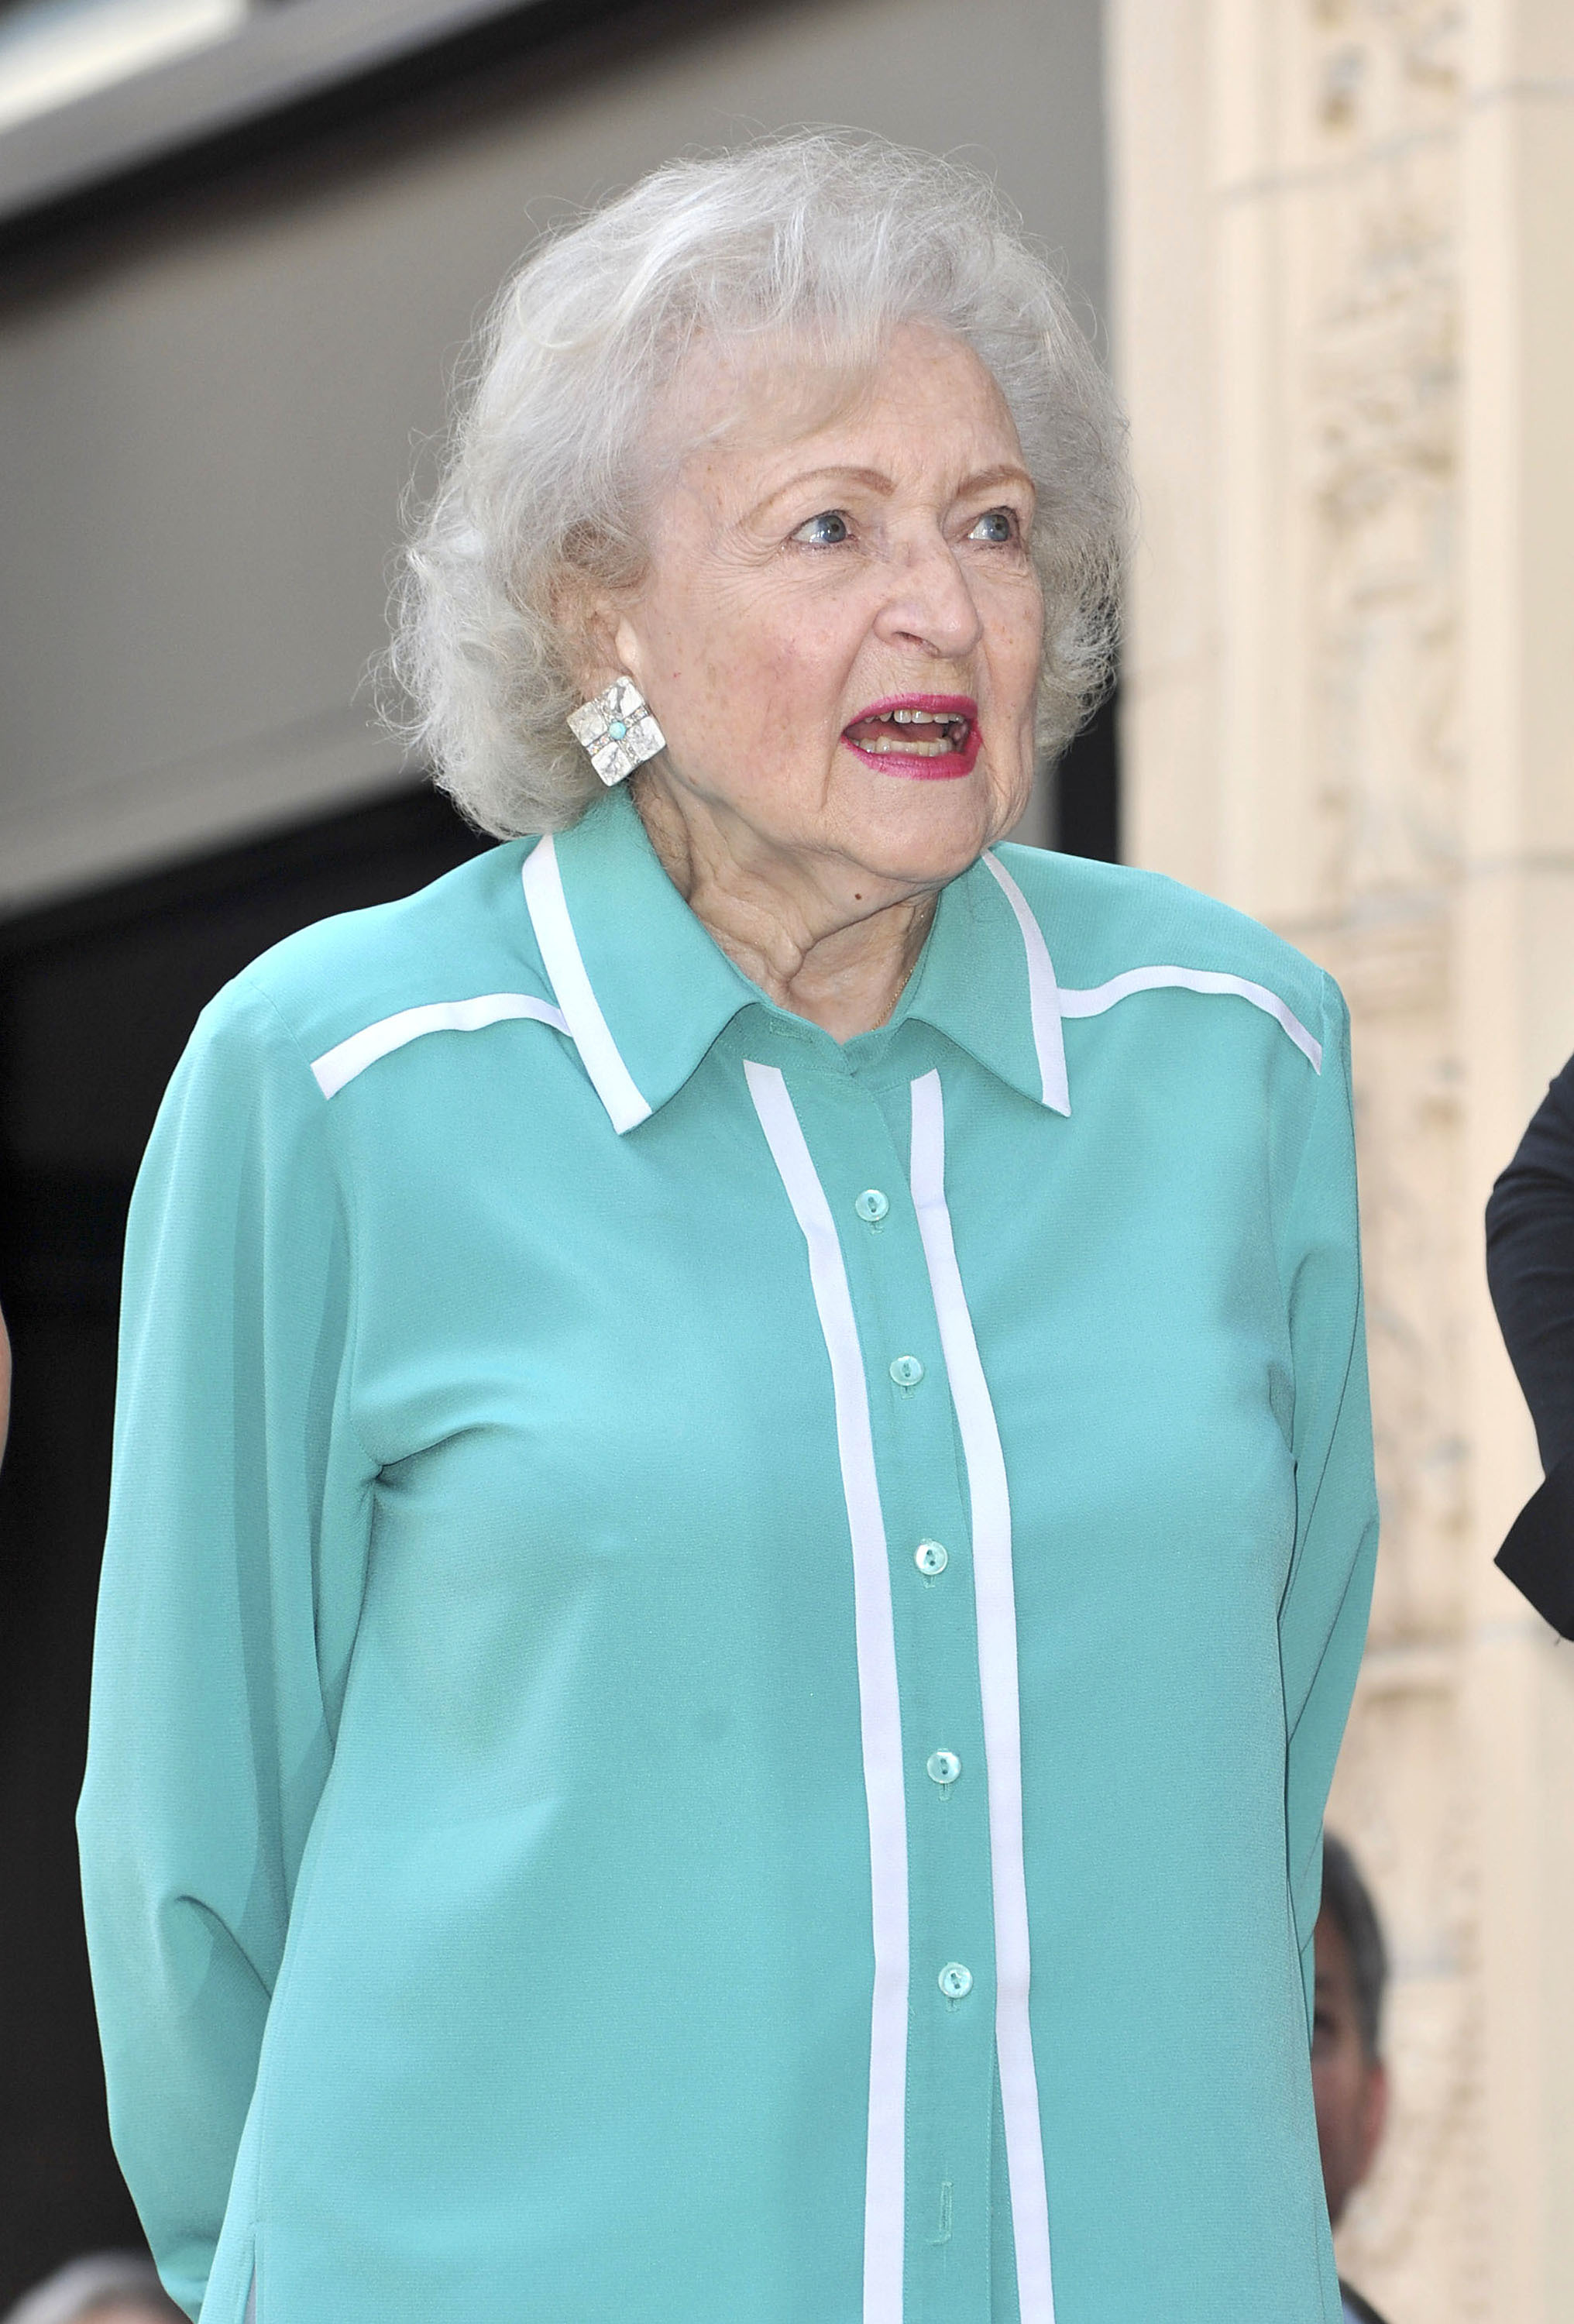 Betty White,                  Valerie Bertinelli is honored with the 2,476th star on the Hollywood Walk of Fame                  Hollywood, California - 22.08.12                                    Featuring: Betty White,                  Where: CA, United States                  When: 22 Aug 2012                  Credit: WENN